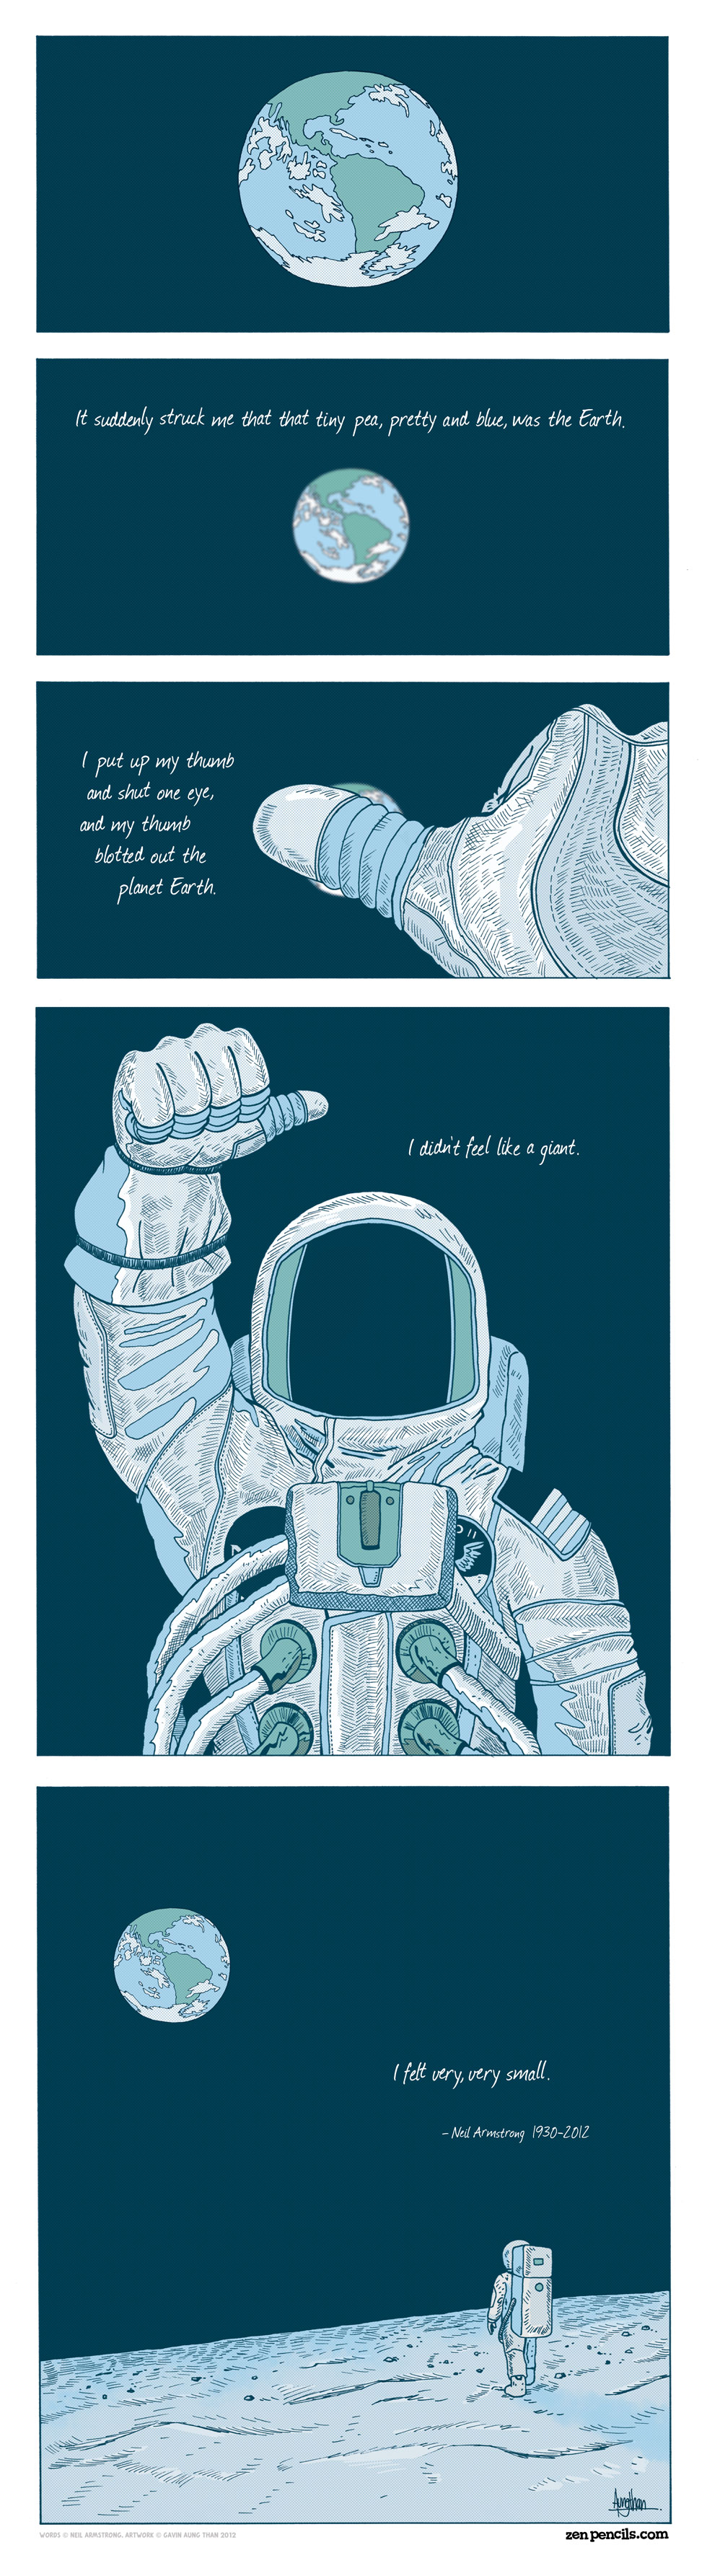 2012-08-30-armstrong